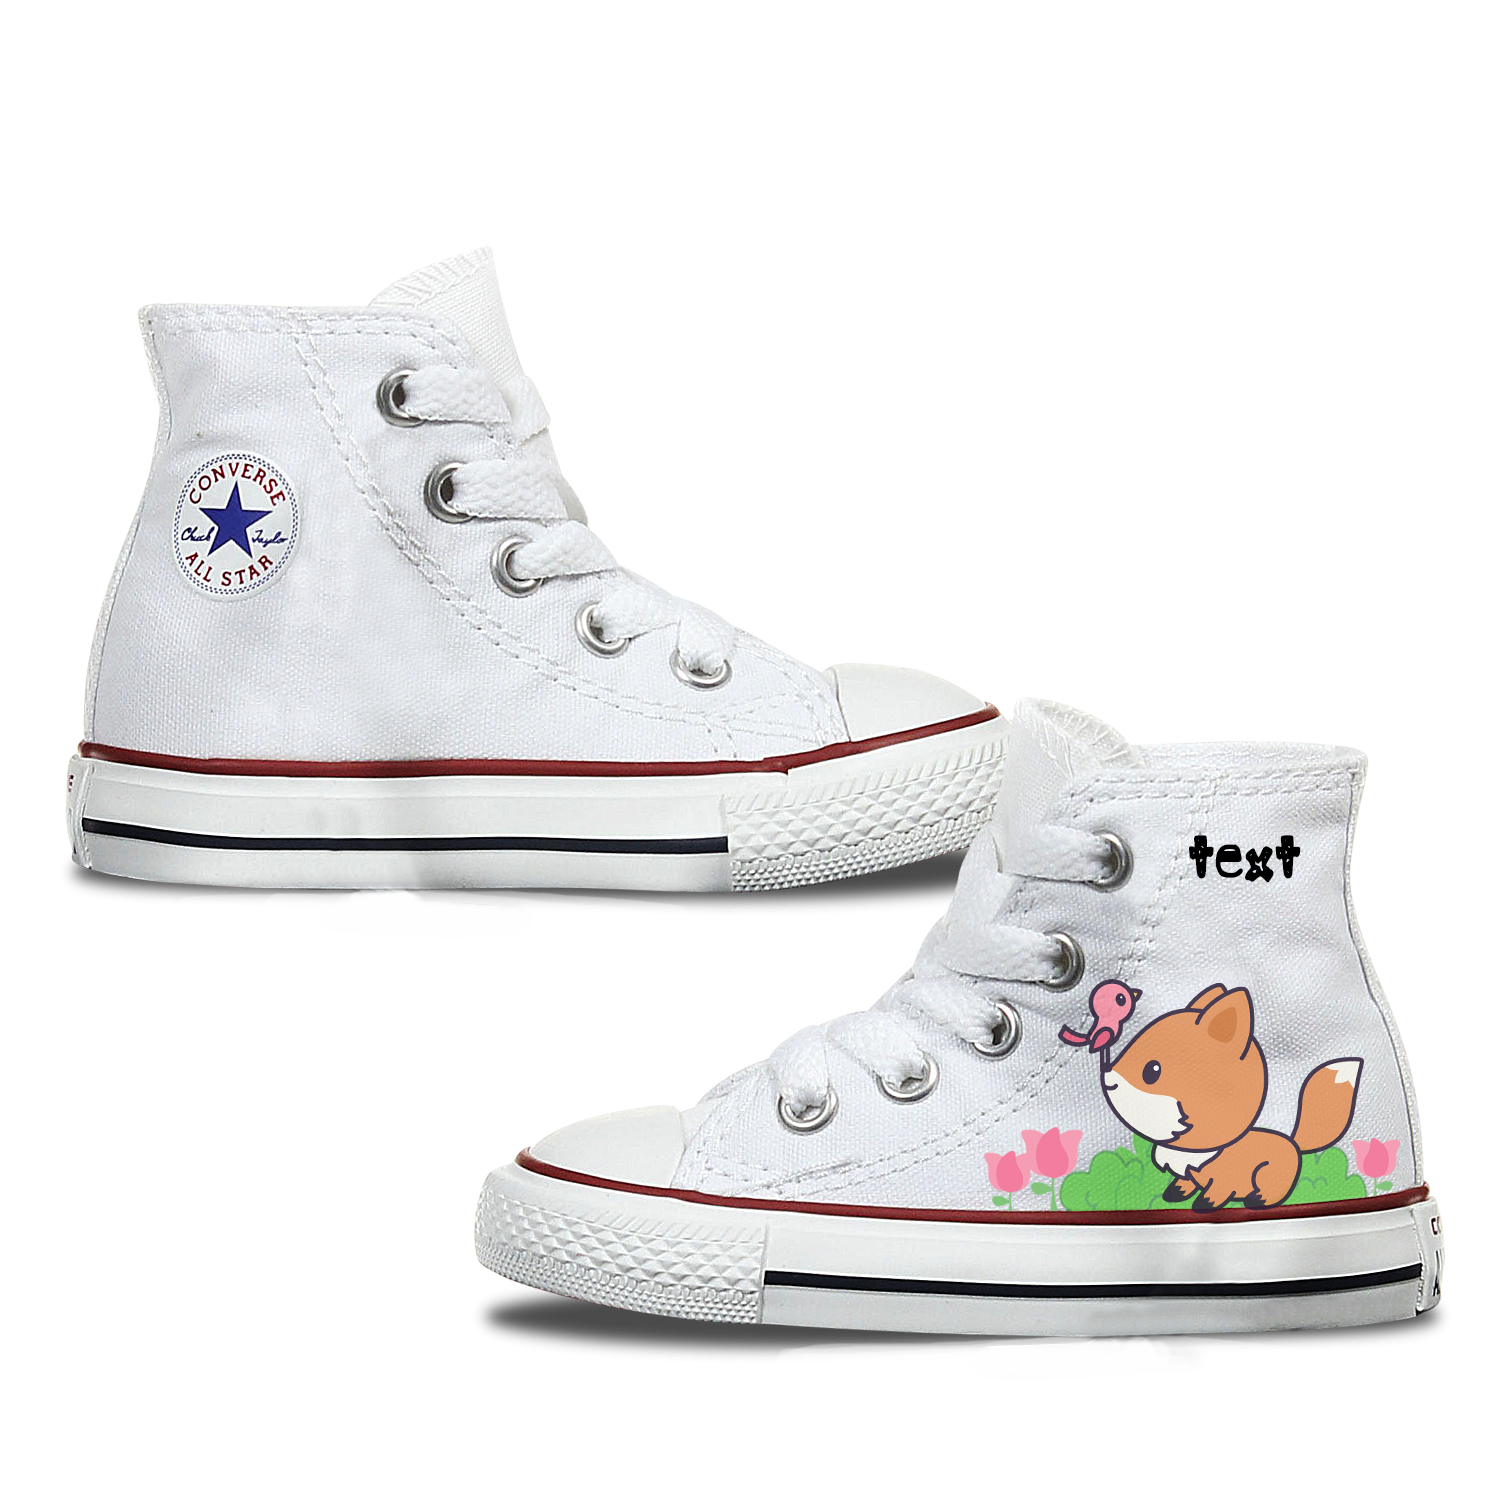 Fox Kids Custom Converse